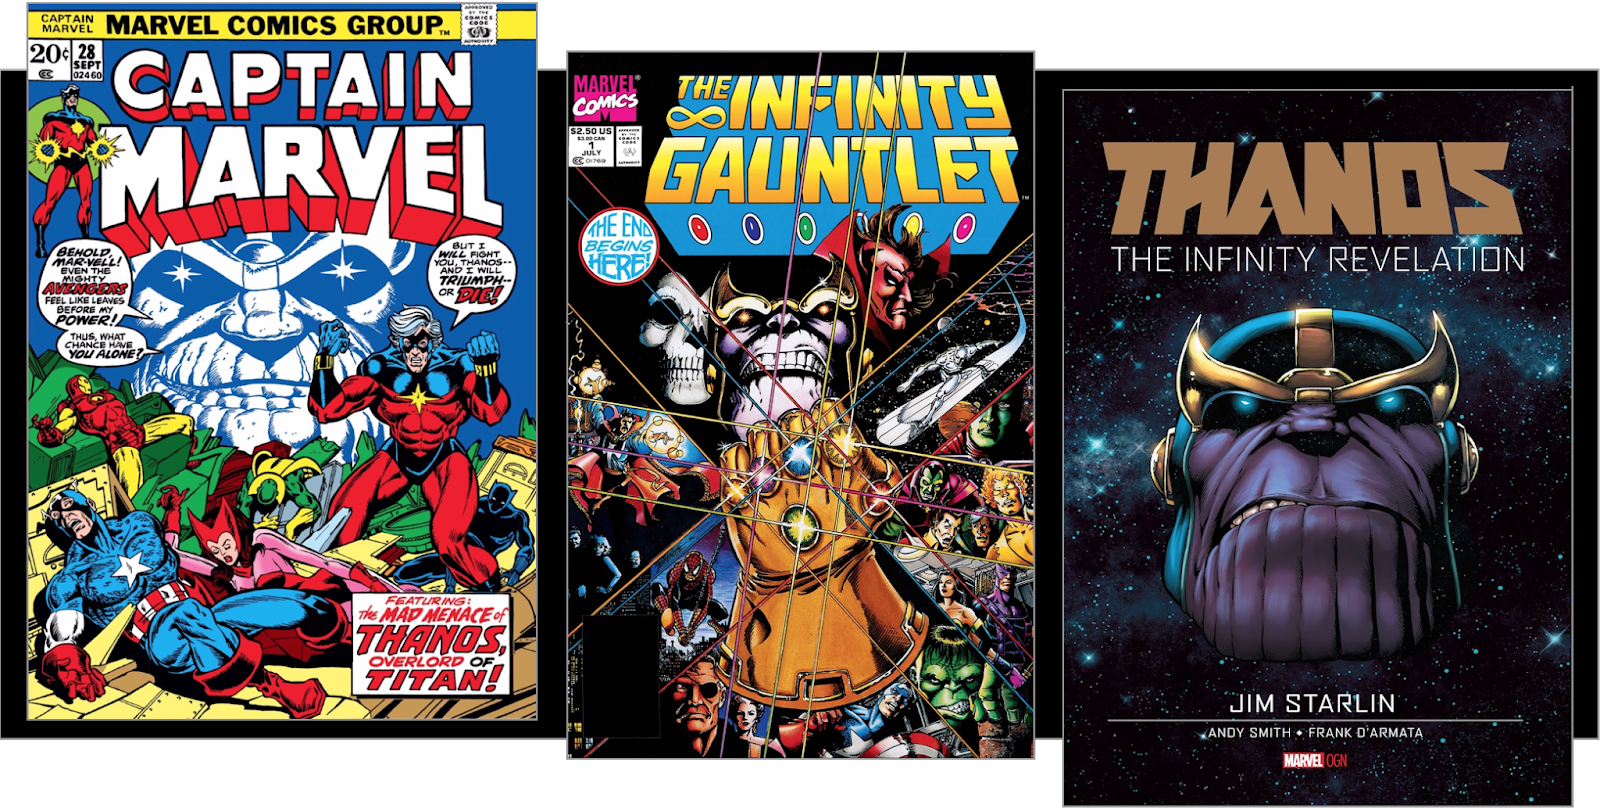 Covers of 3 comic books from different eras with giant floating Thanos head common to all